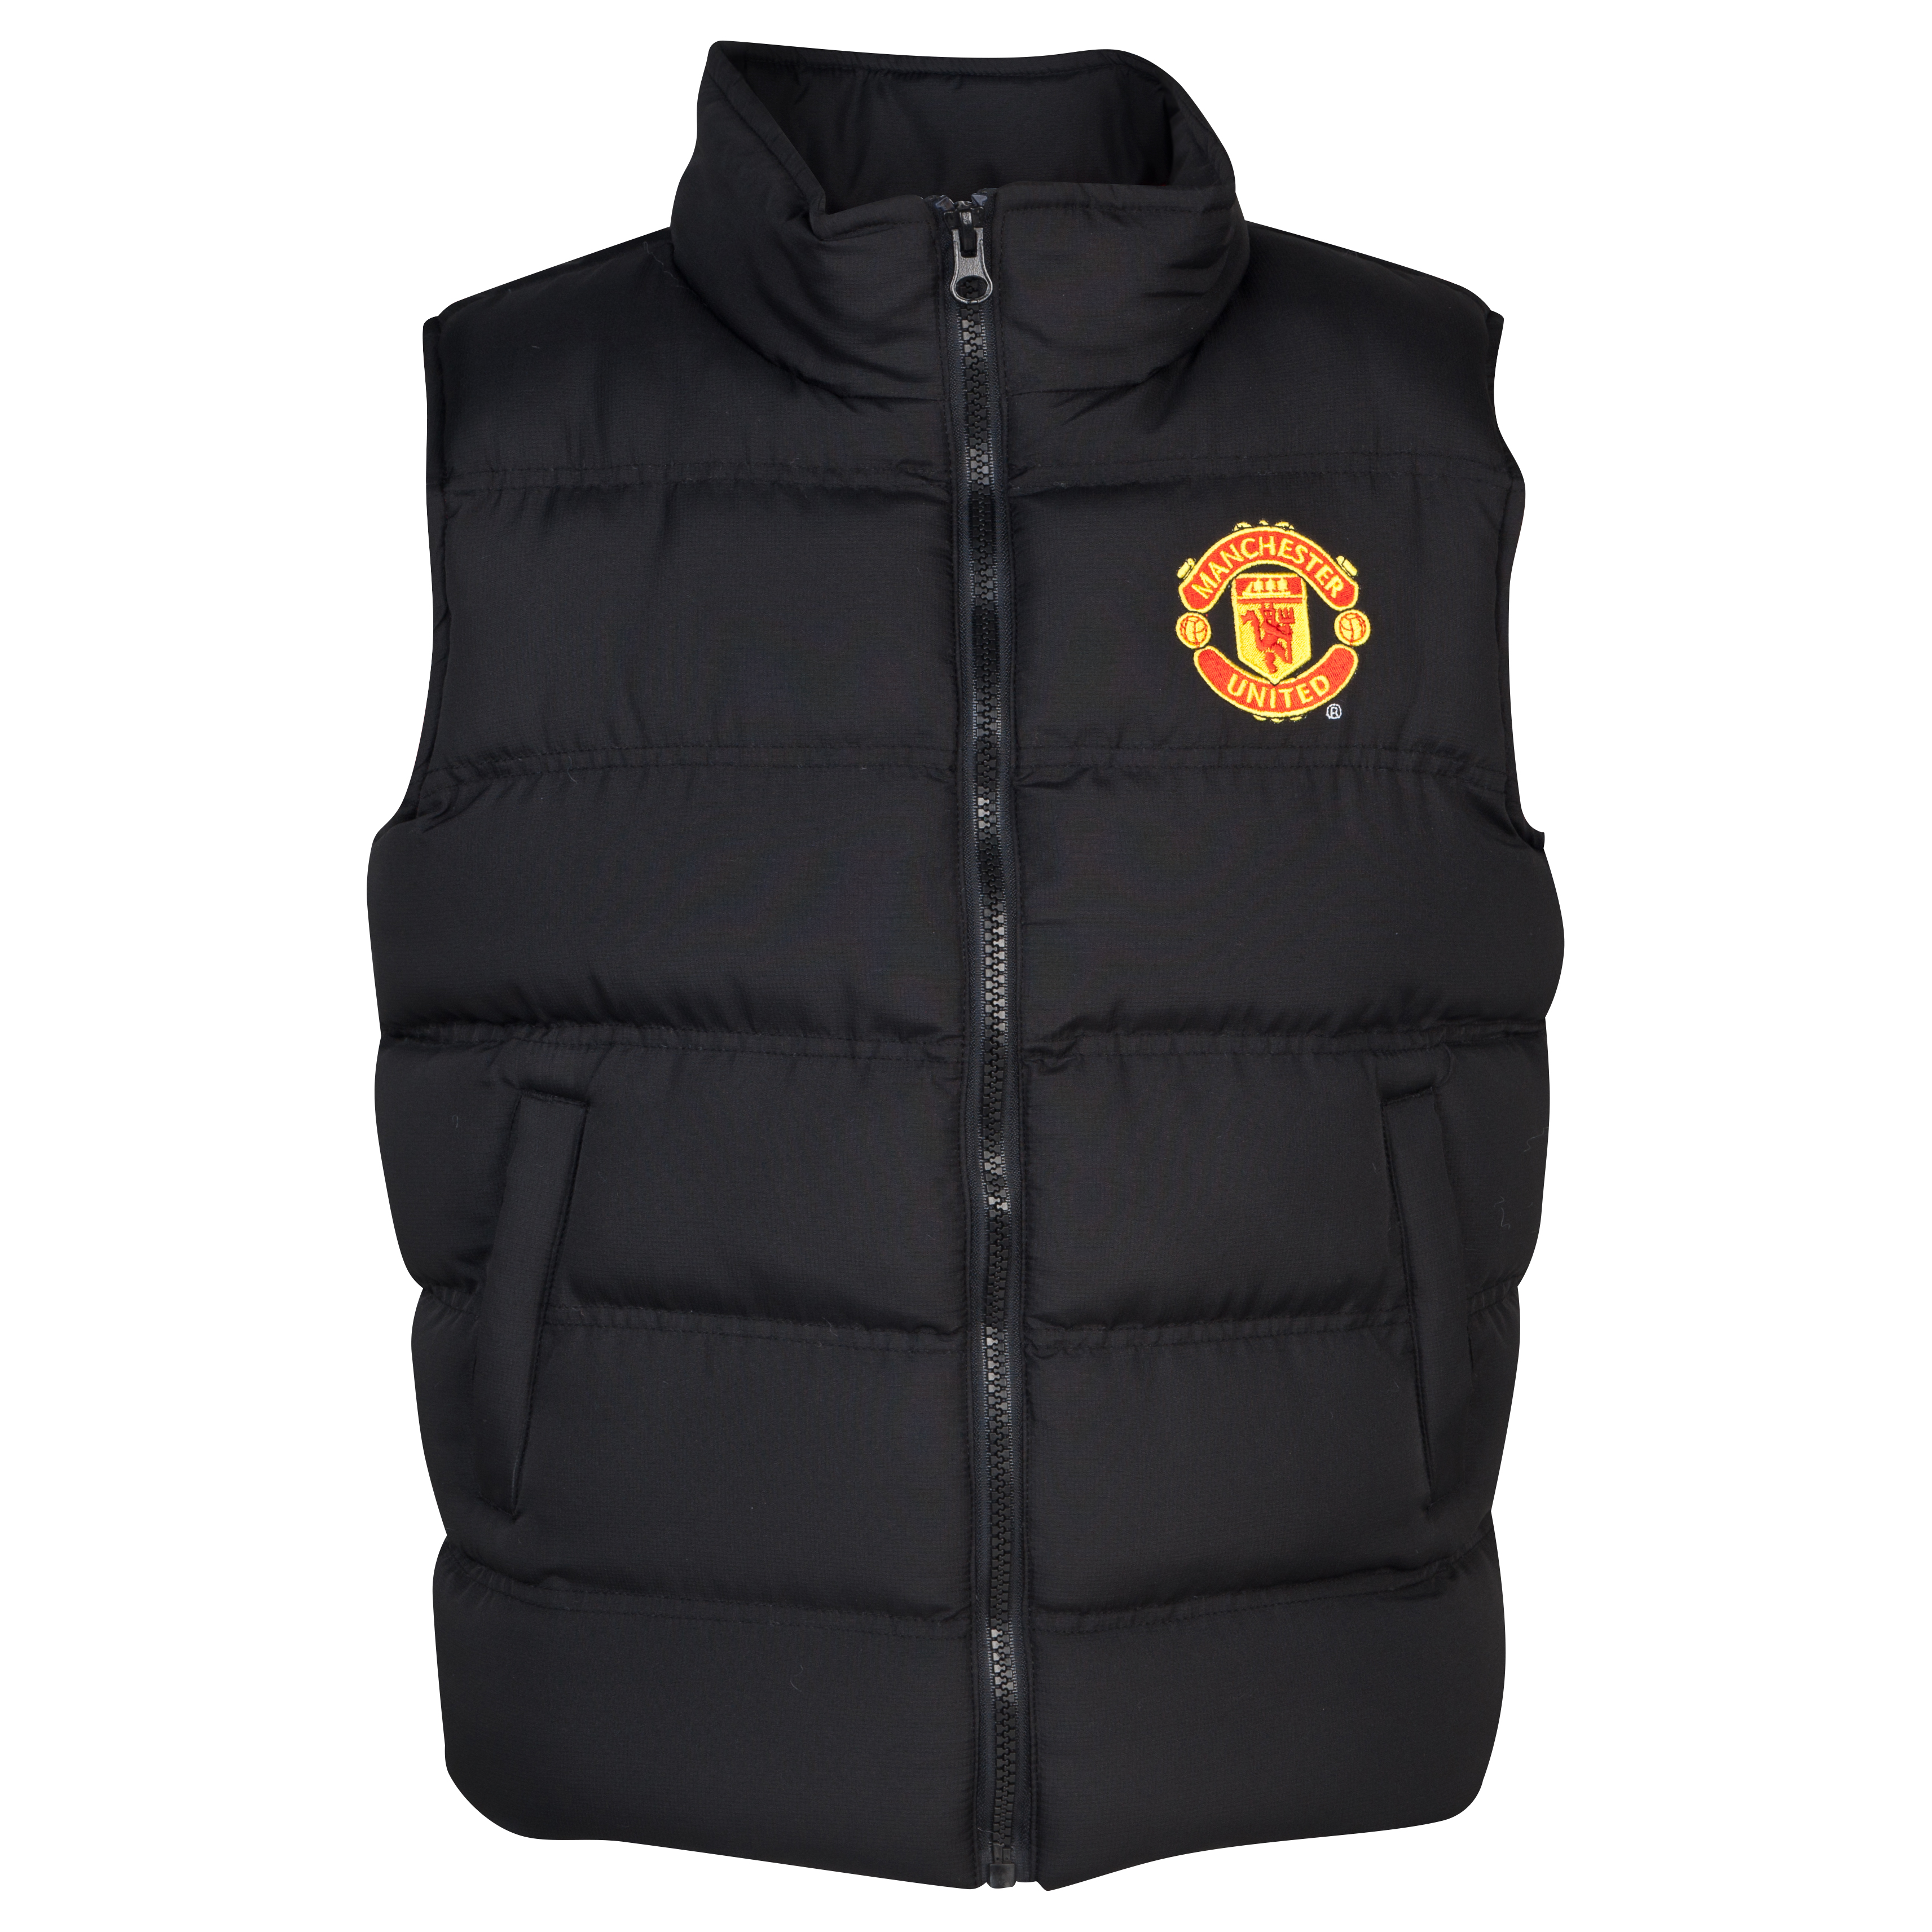 Manchester United Puffa Gilet  - Older Boys Black